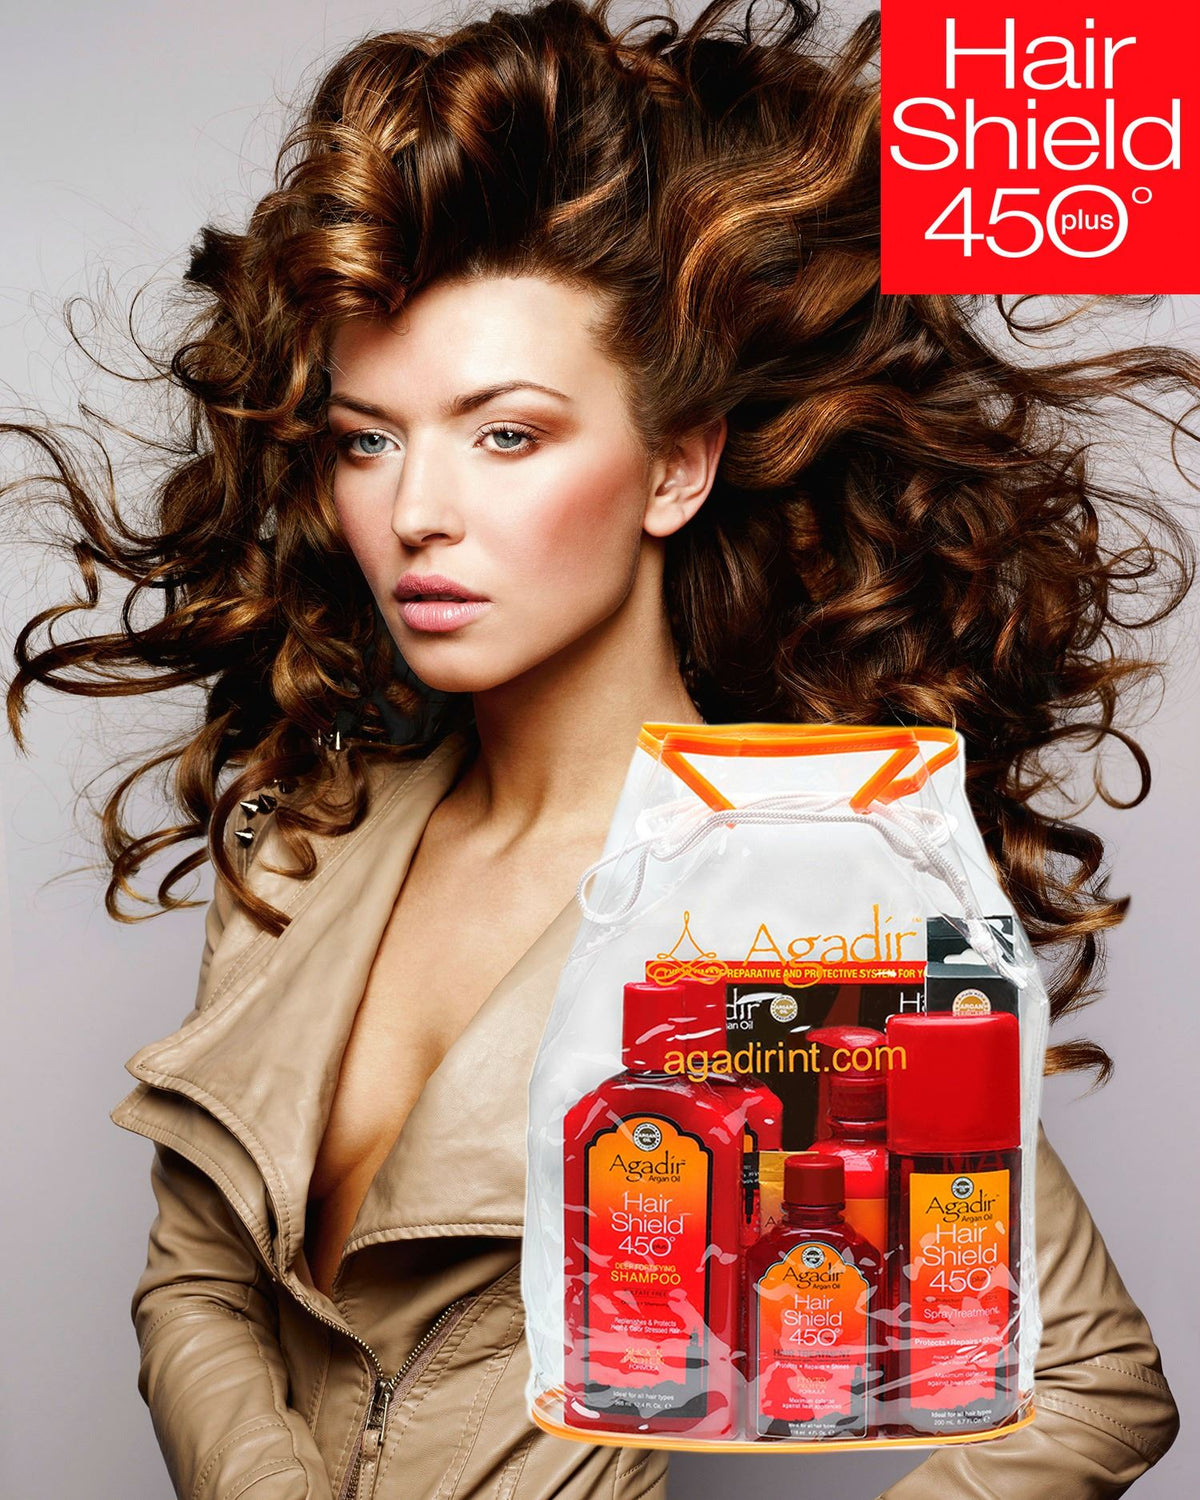 AGADIR GIVEAWAY: Hair Shield 450 Bag